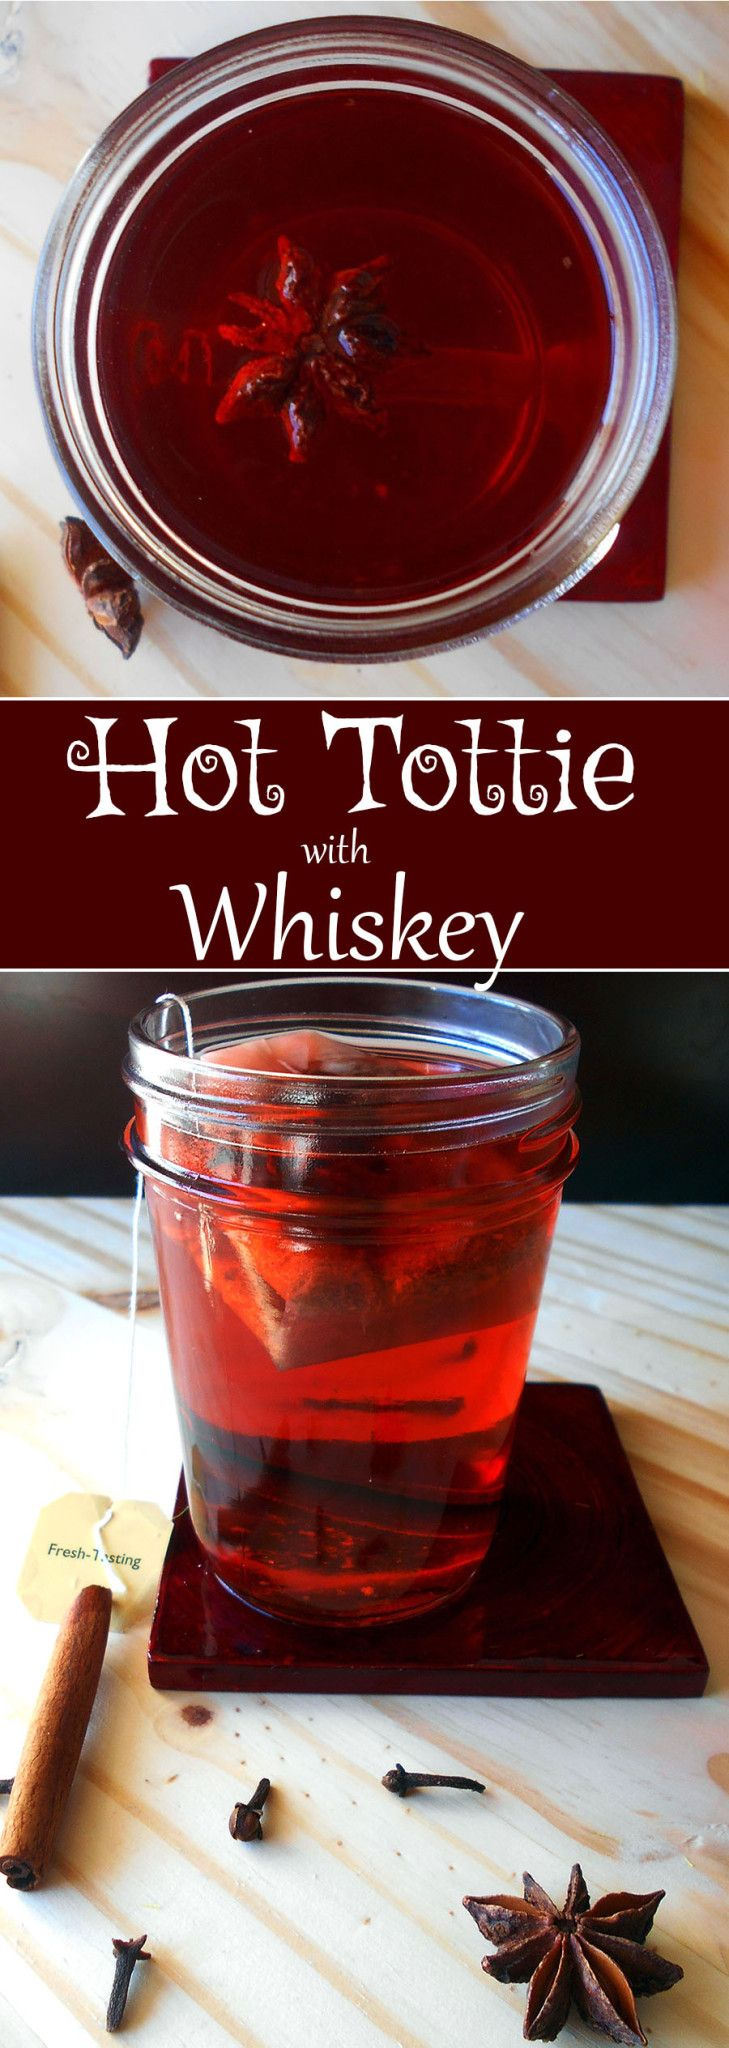 124091 best liquid refreshments images on pinterest for Hot tea with whiskey